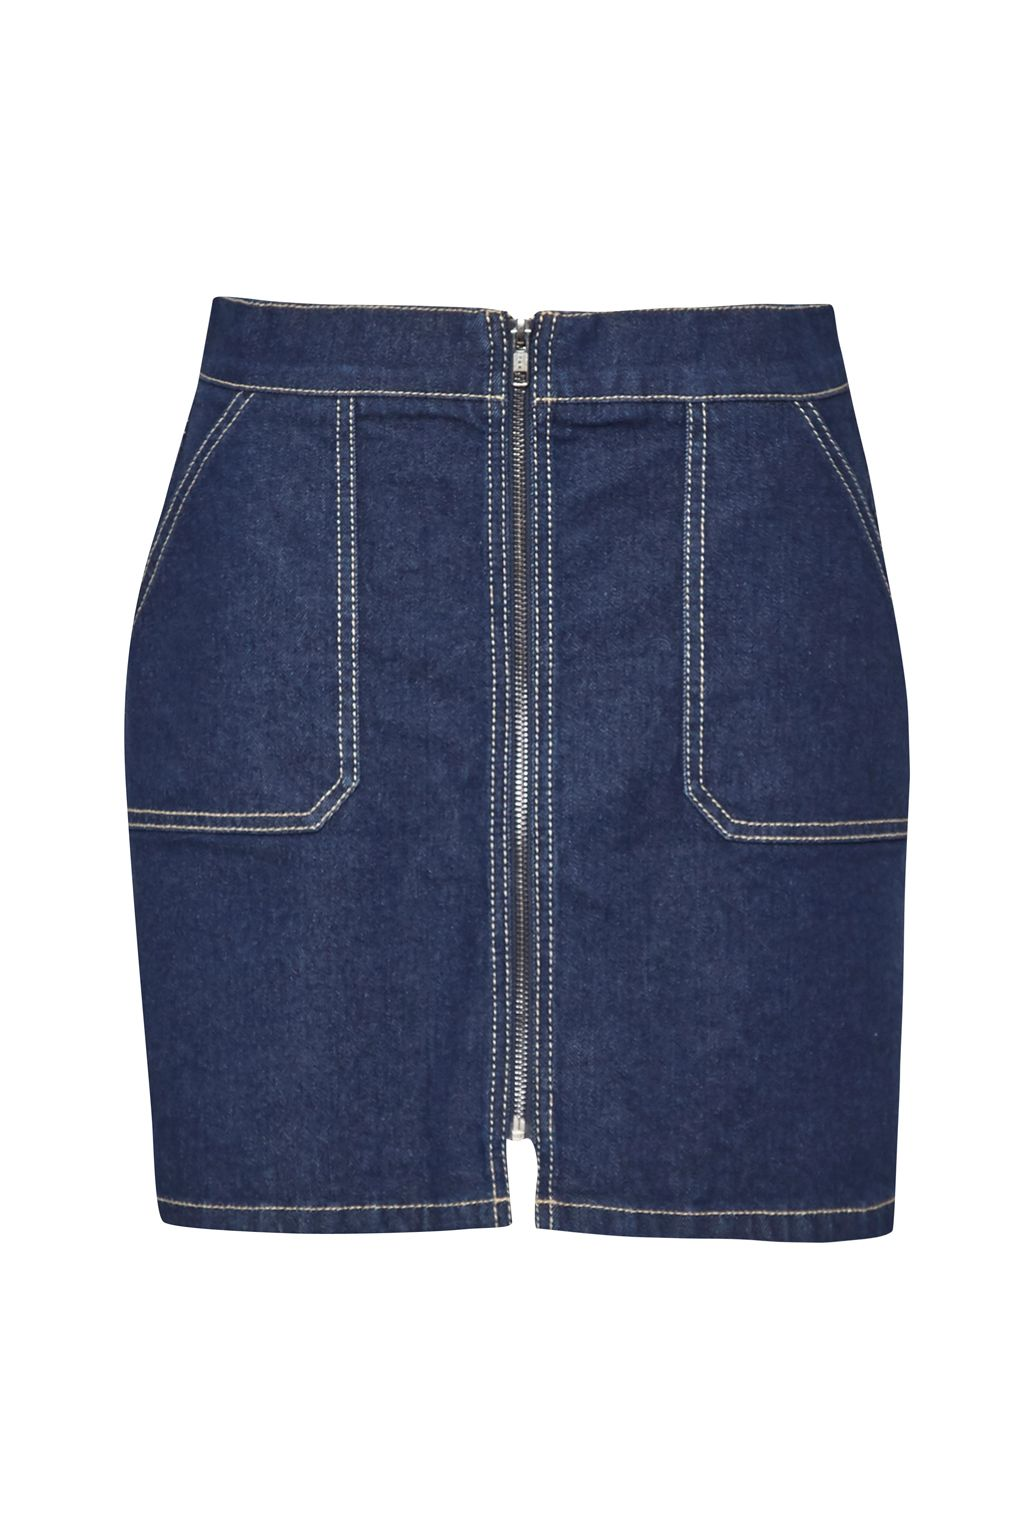 French Connection Cargo Twill A Line Mini Skirt, Indigo